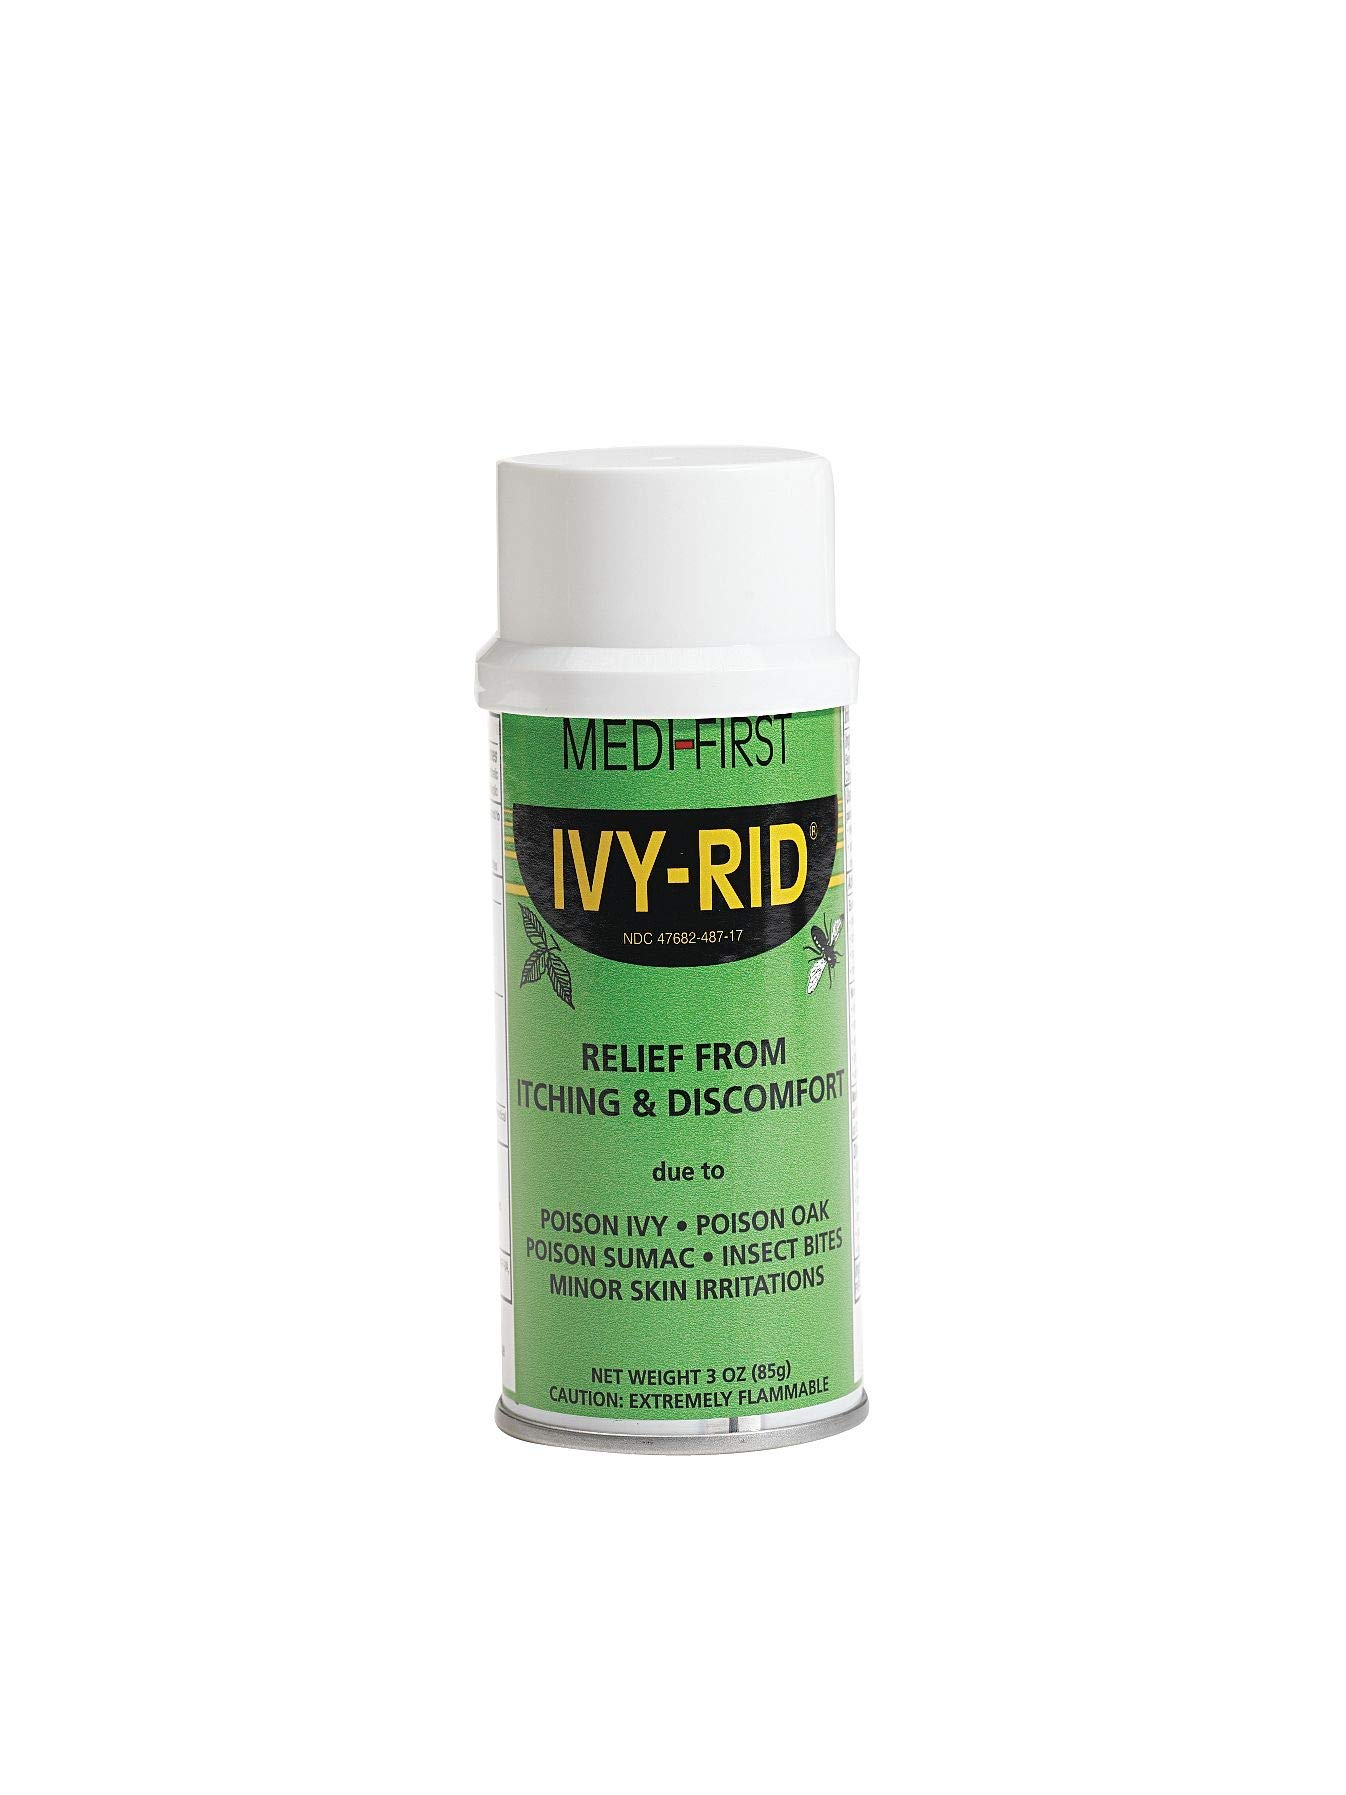 Medique Poison Ivy Spray, 3 oz. Spray Can - 48717, (Pack of 2) by Medique